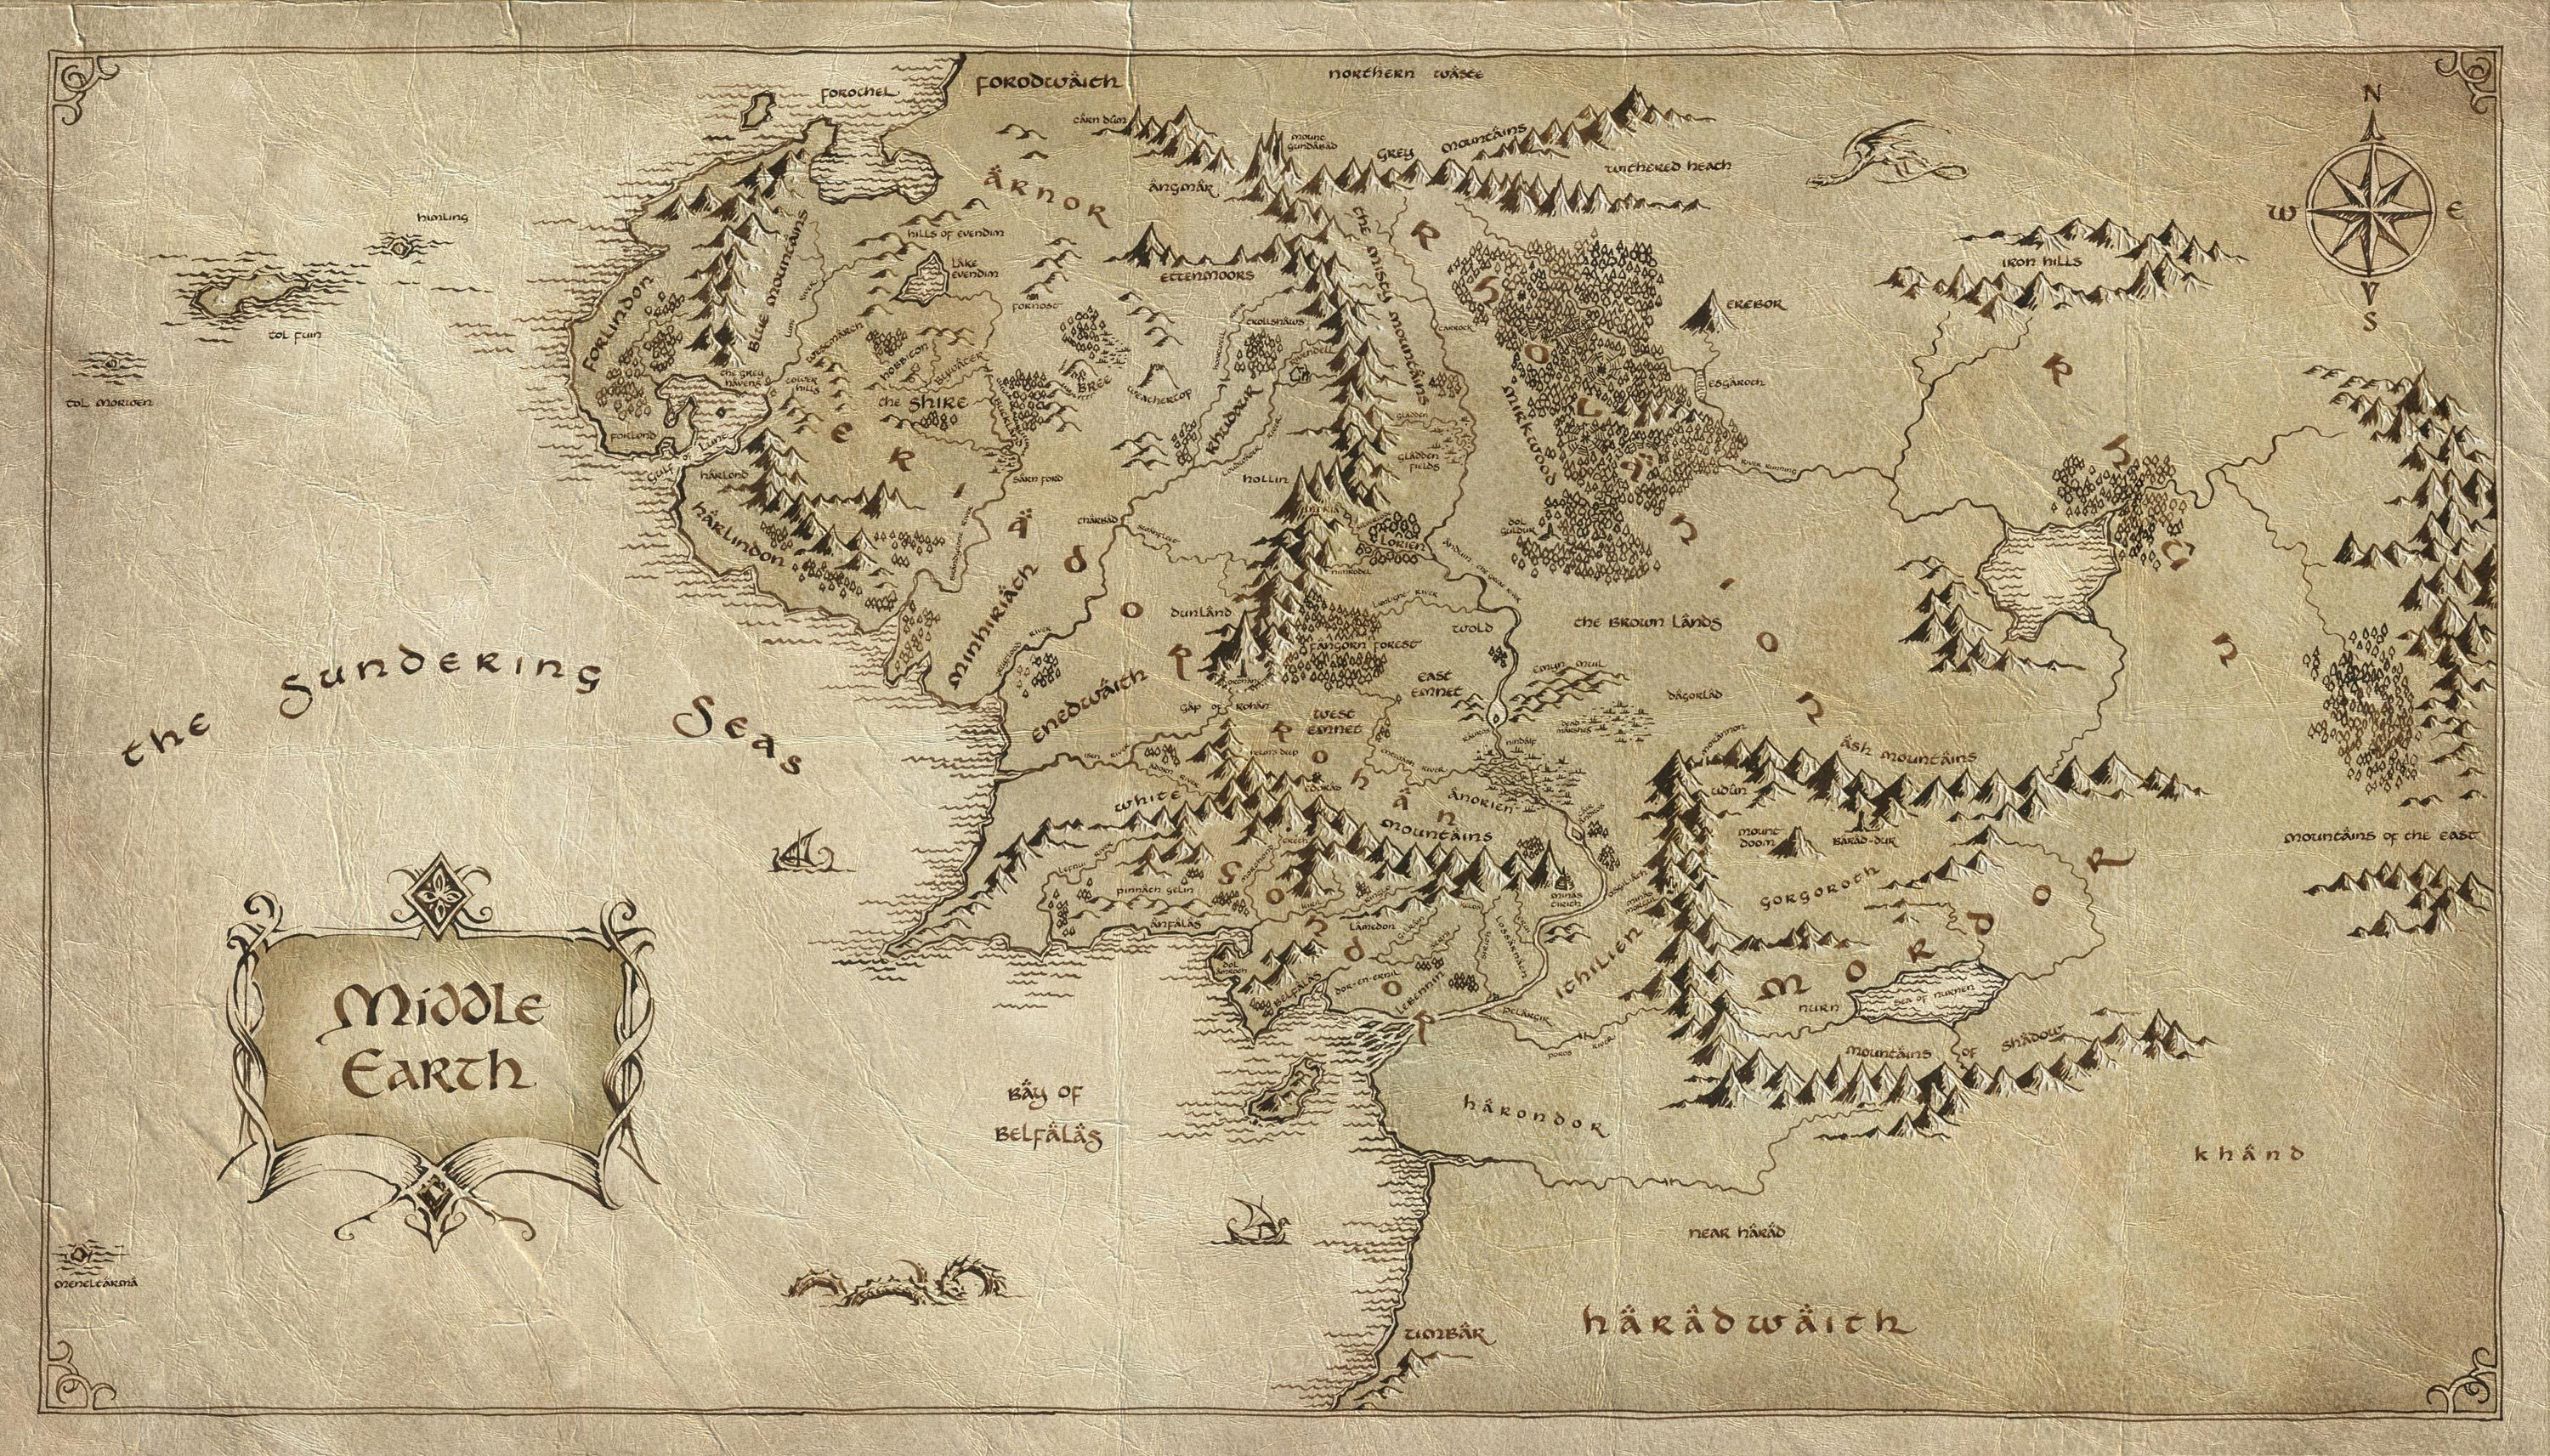 lord of the rings map middle earth download wallpaper map middle